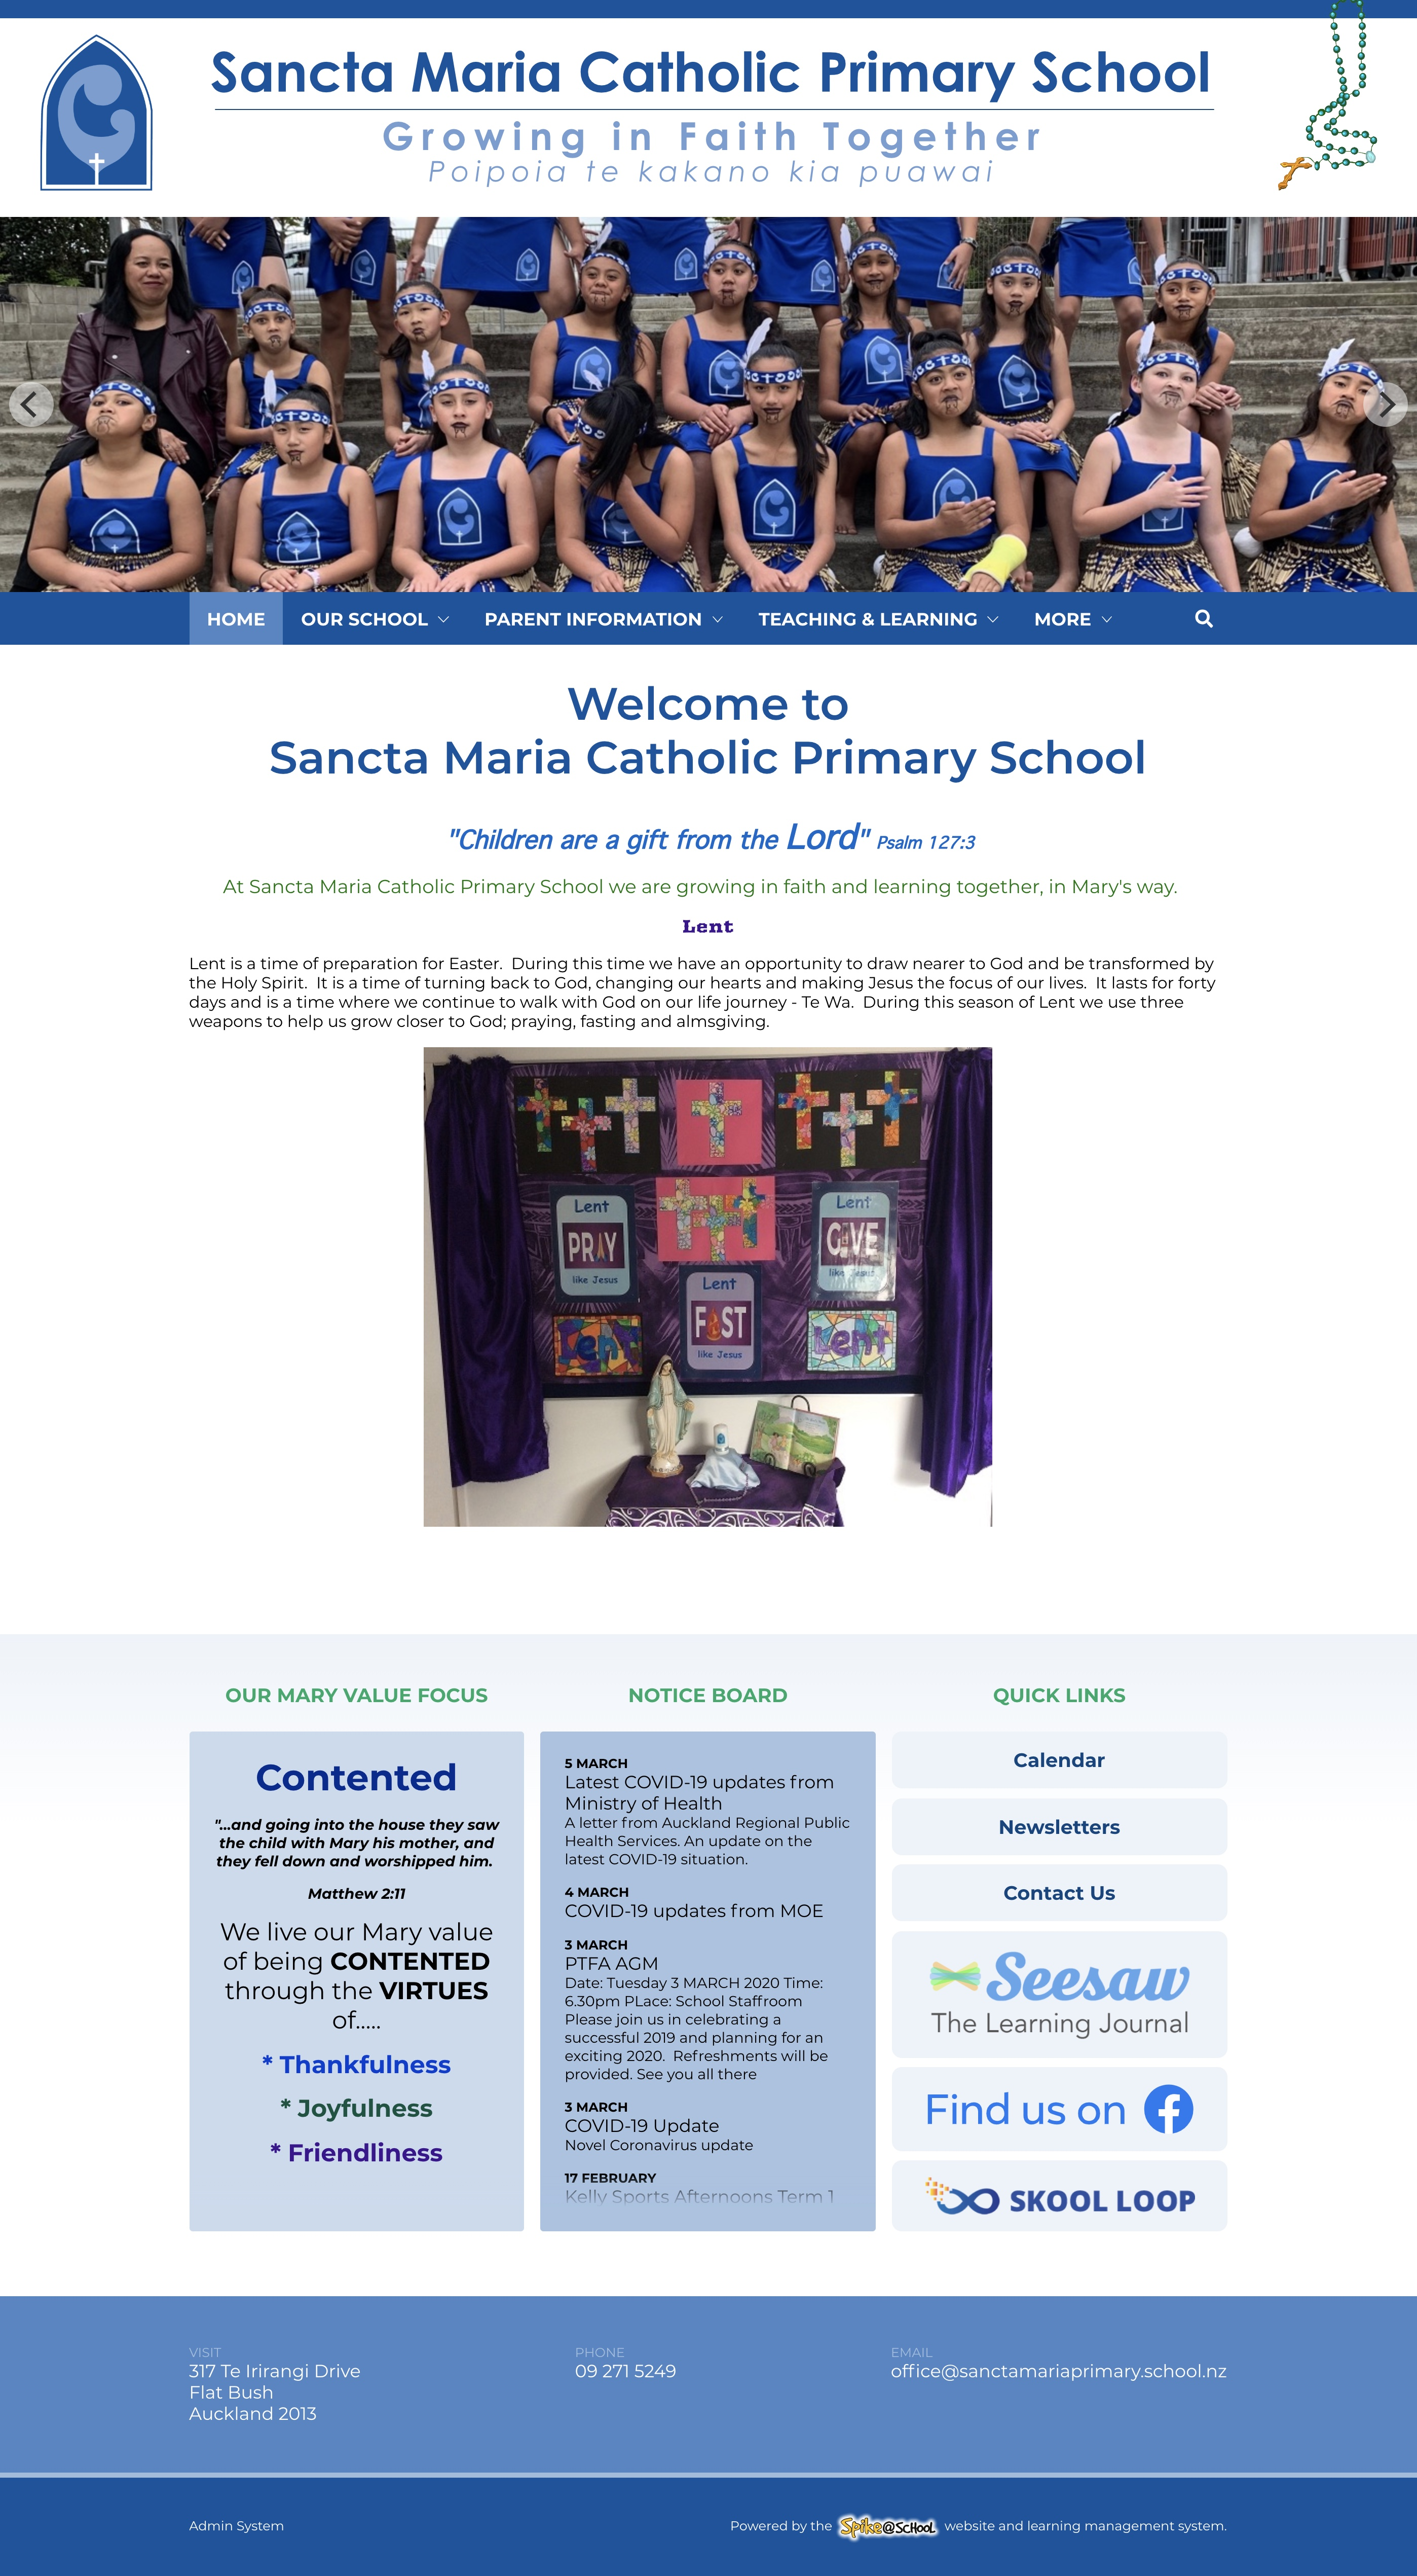 Sancta Maria Catholic Primary School